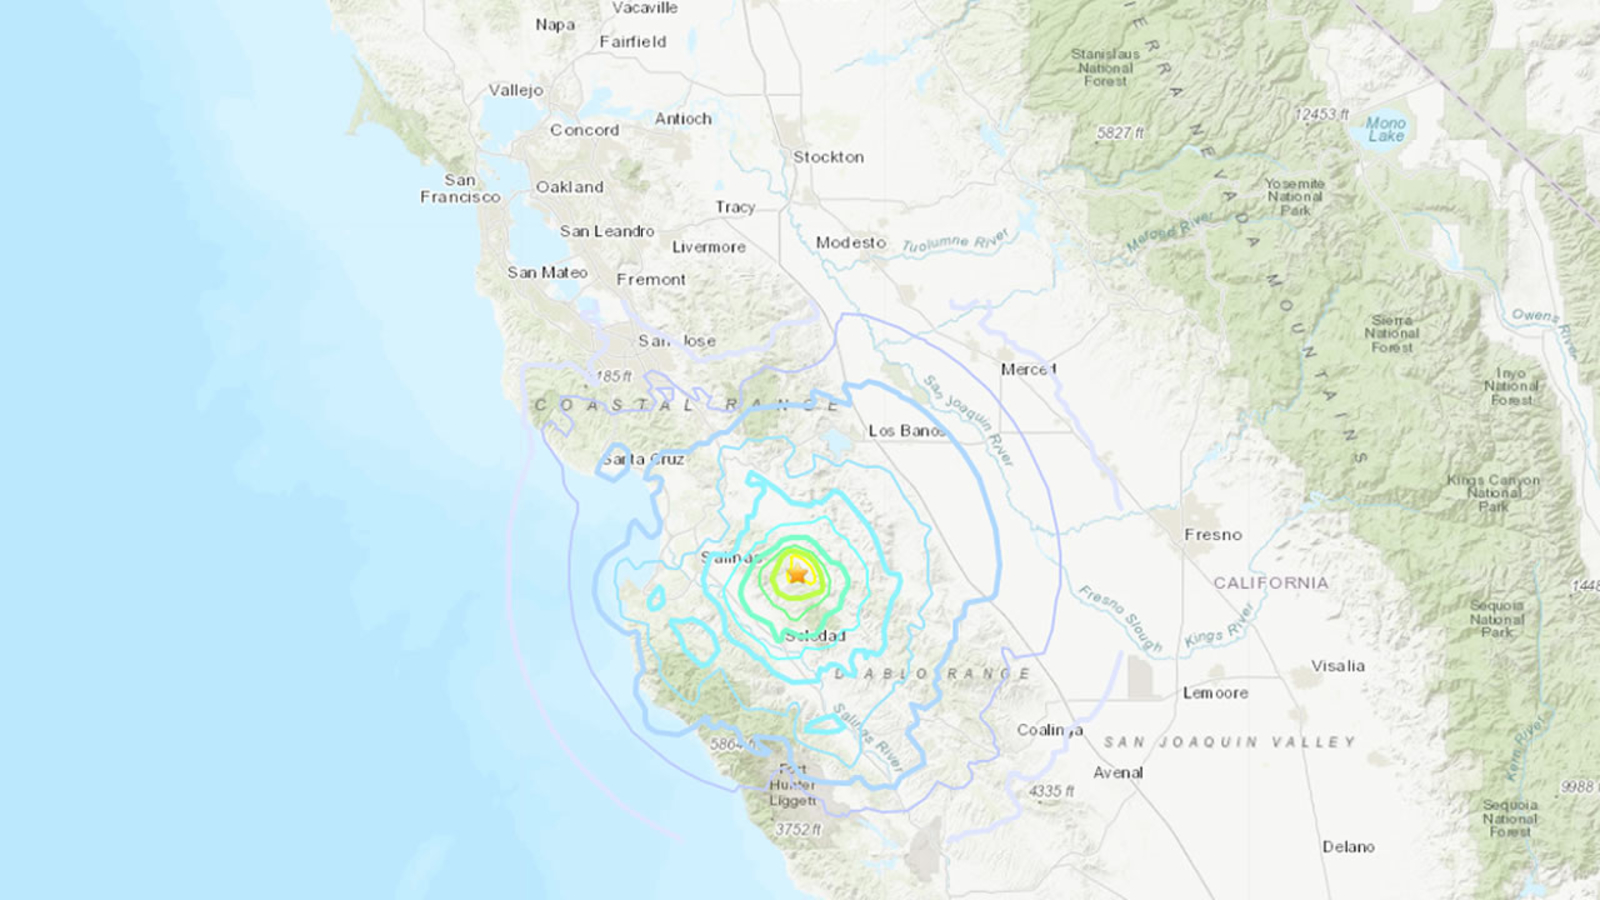 4.7 earthquake reported near Hollister comes after 4.5 temblor hit in Bay Area - KGO-TV